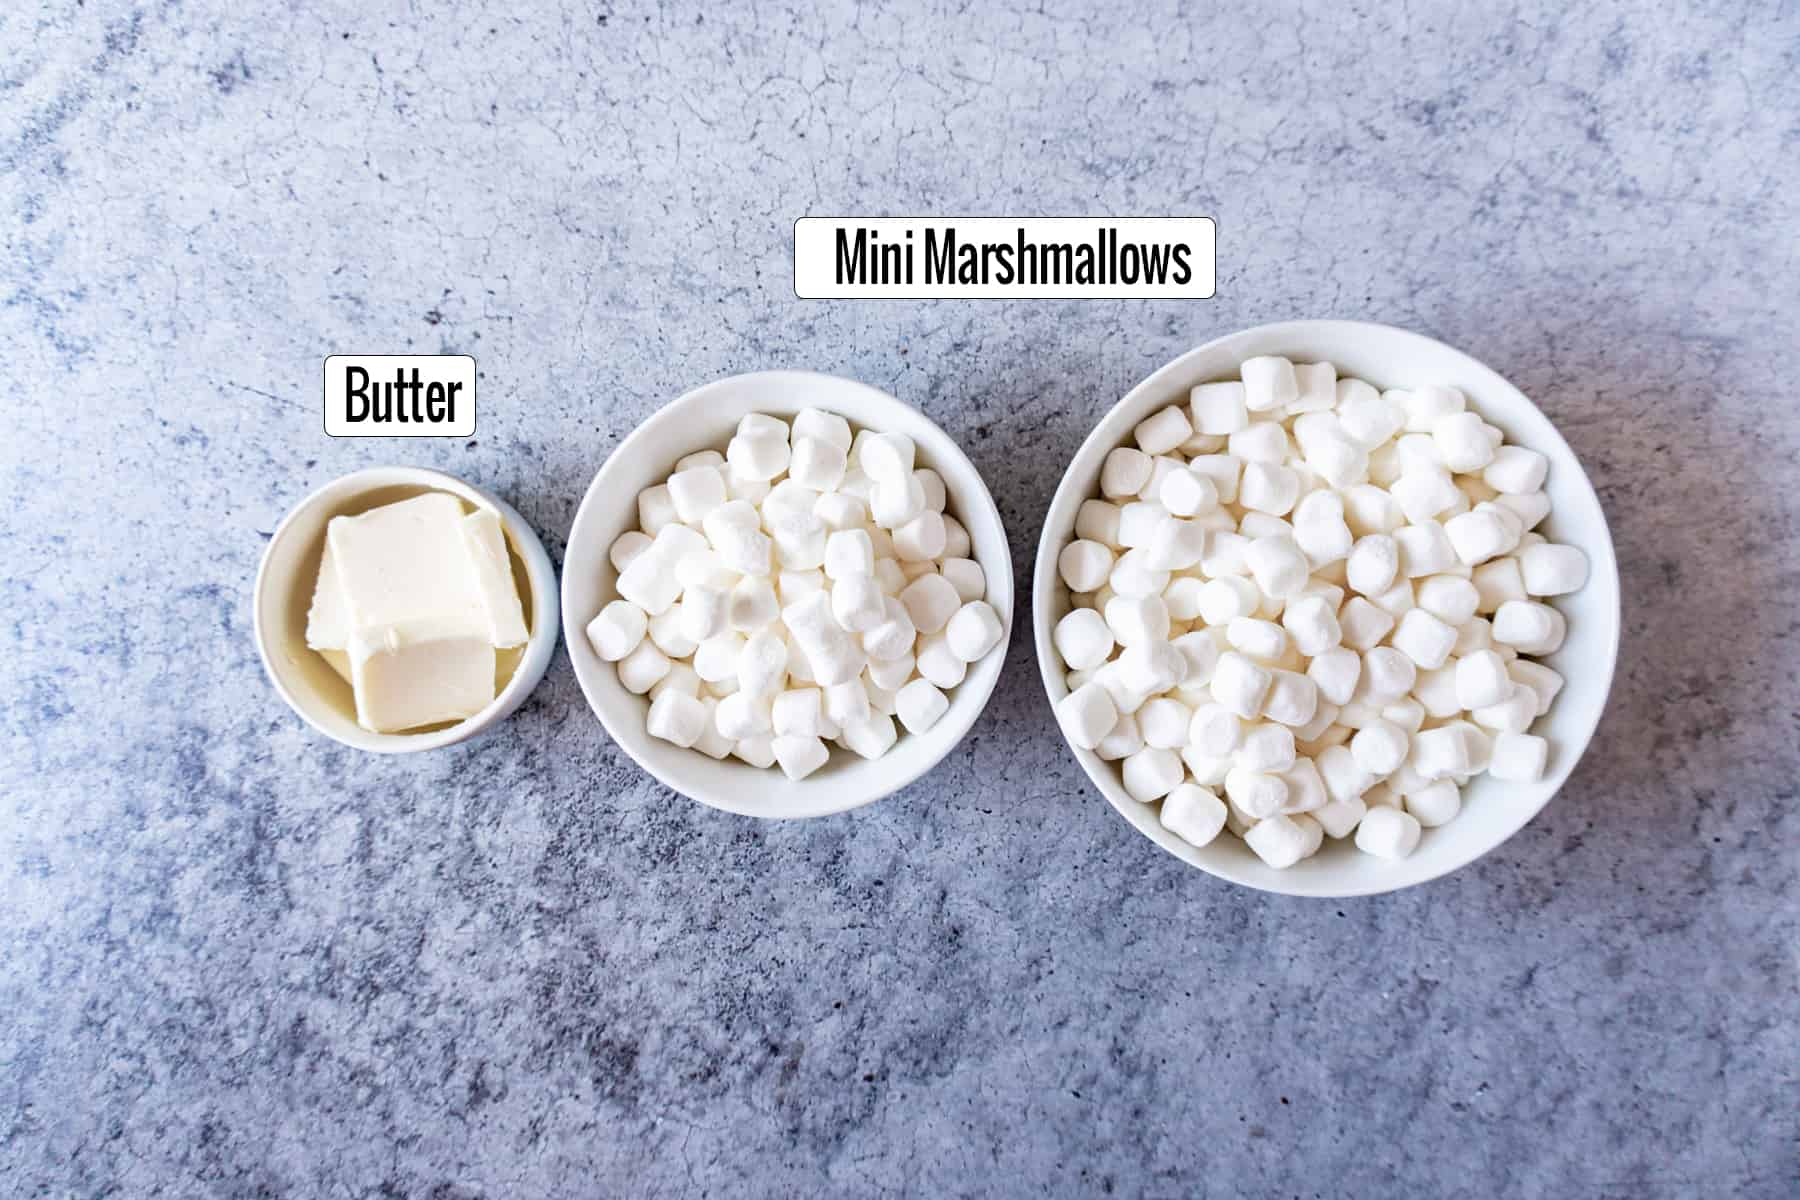 Ingredients in bowls marshmallows and butter